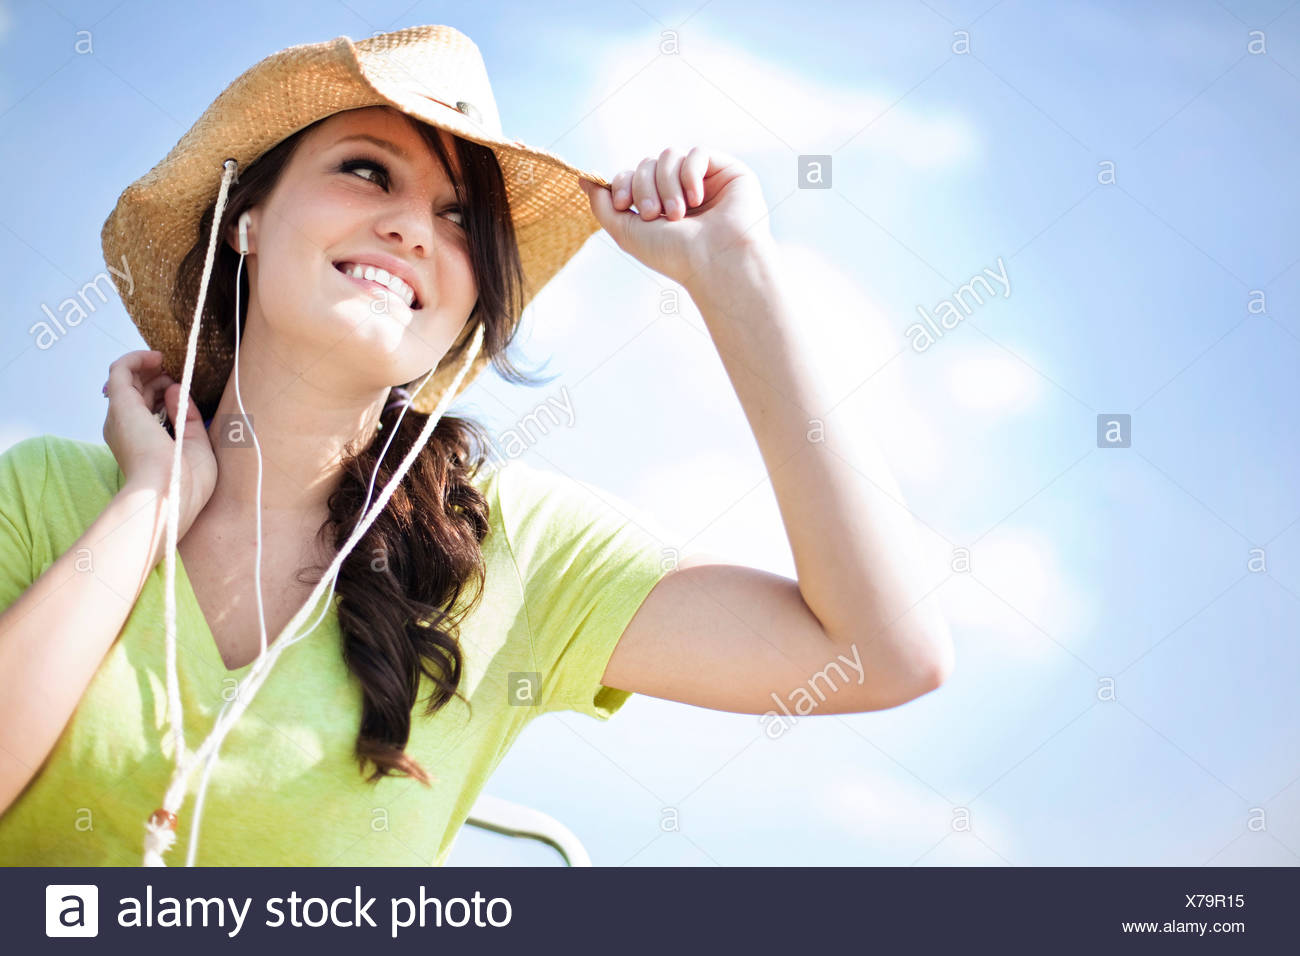 A young woman looks off while smiling listening to music. - Stock Image